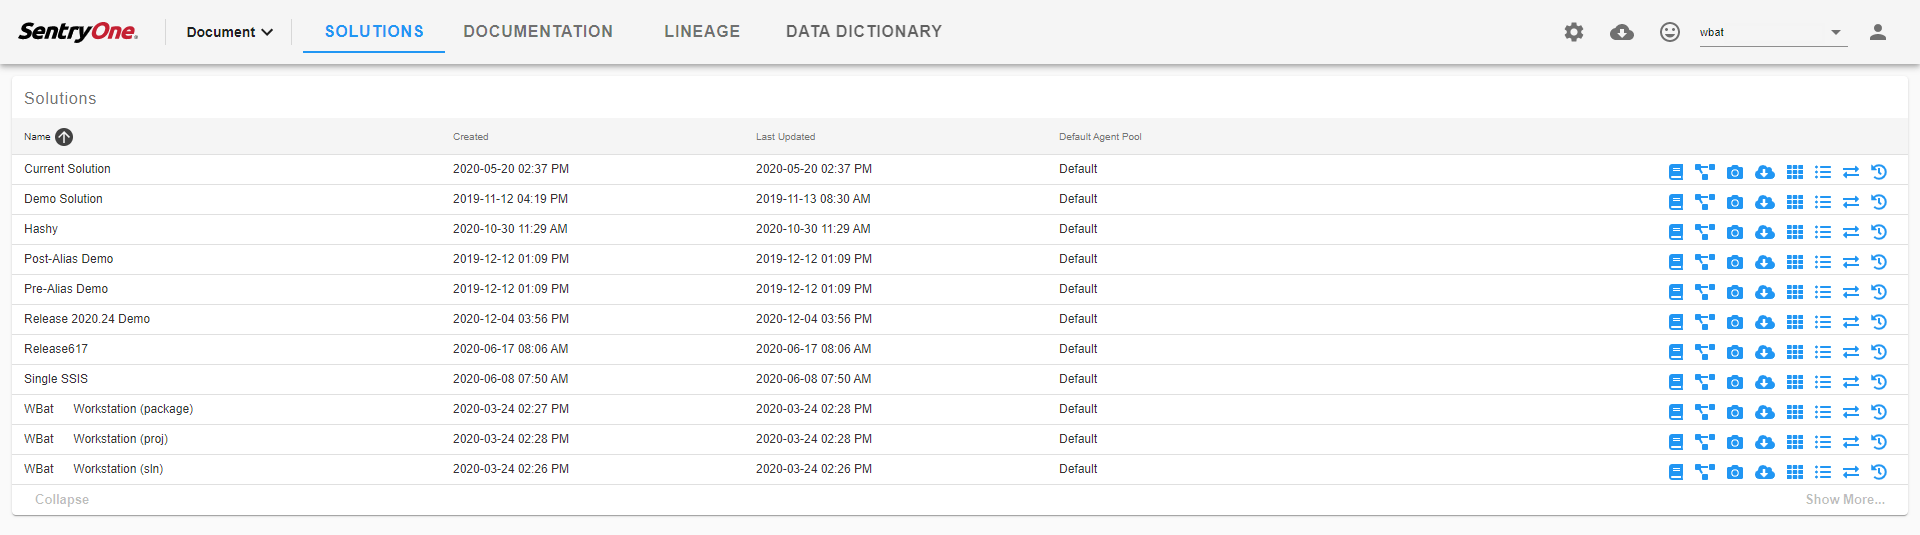 SentryOne Document Solutions Dashboard